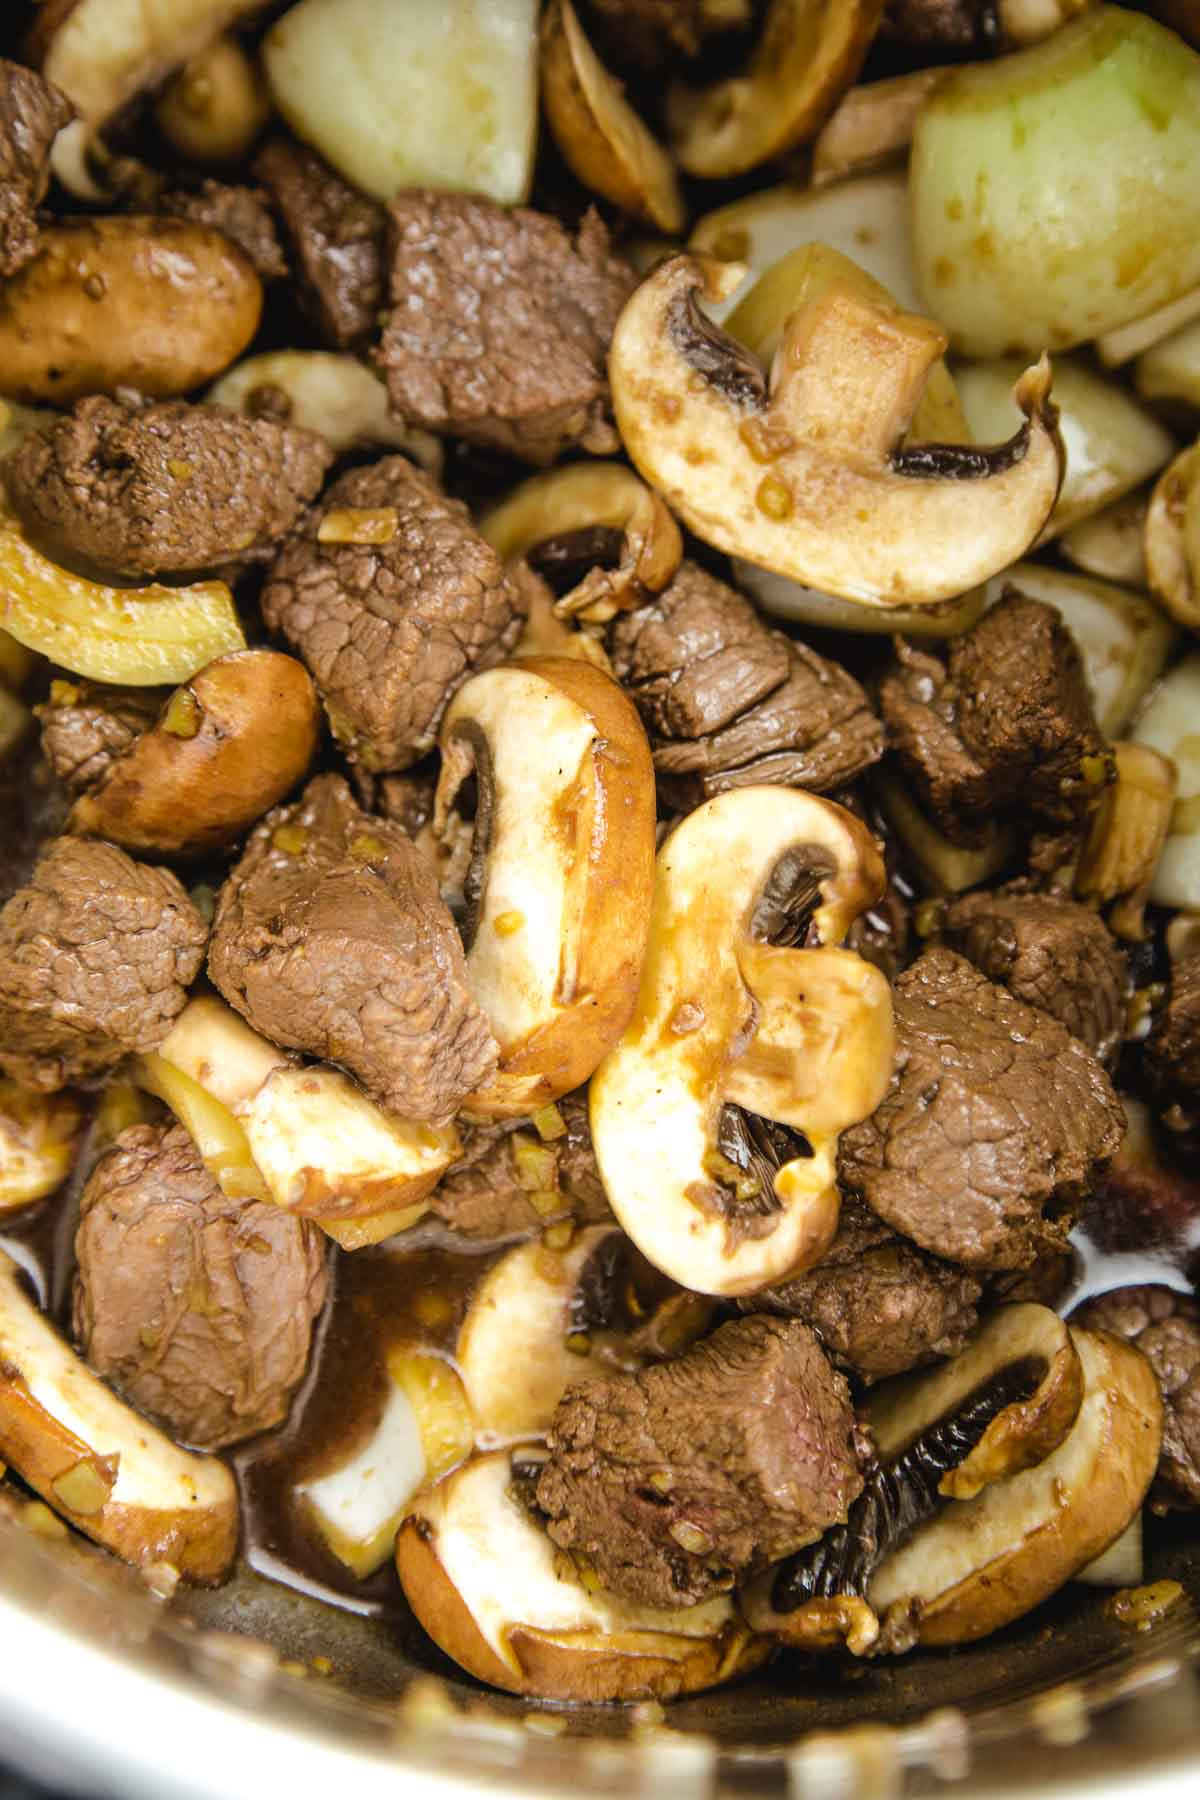 seared steak and raw mushrooms in soy sauce - a close up shot